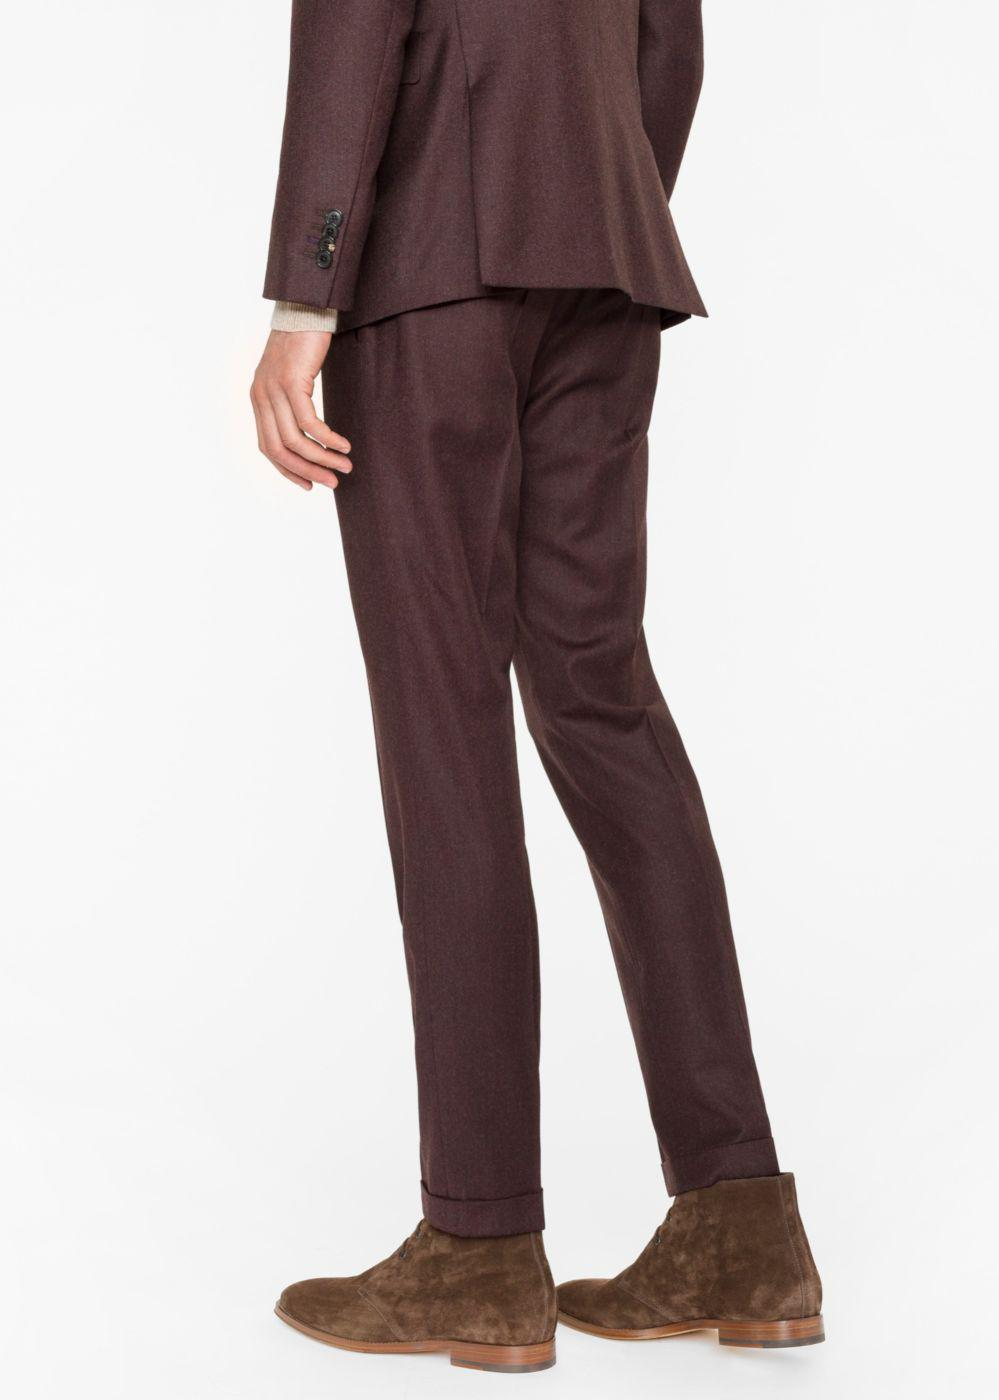 439a3d1e9fd Lyst - Paul Smith Men s Slim-fit Brown Wool-cashmere Trousers in ...